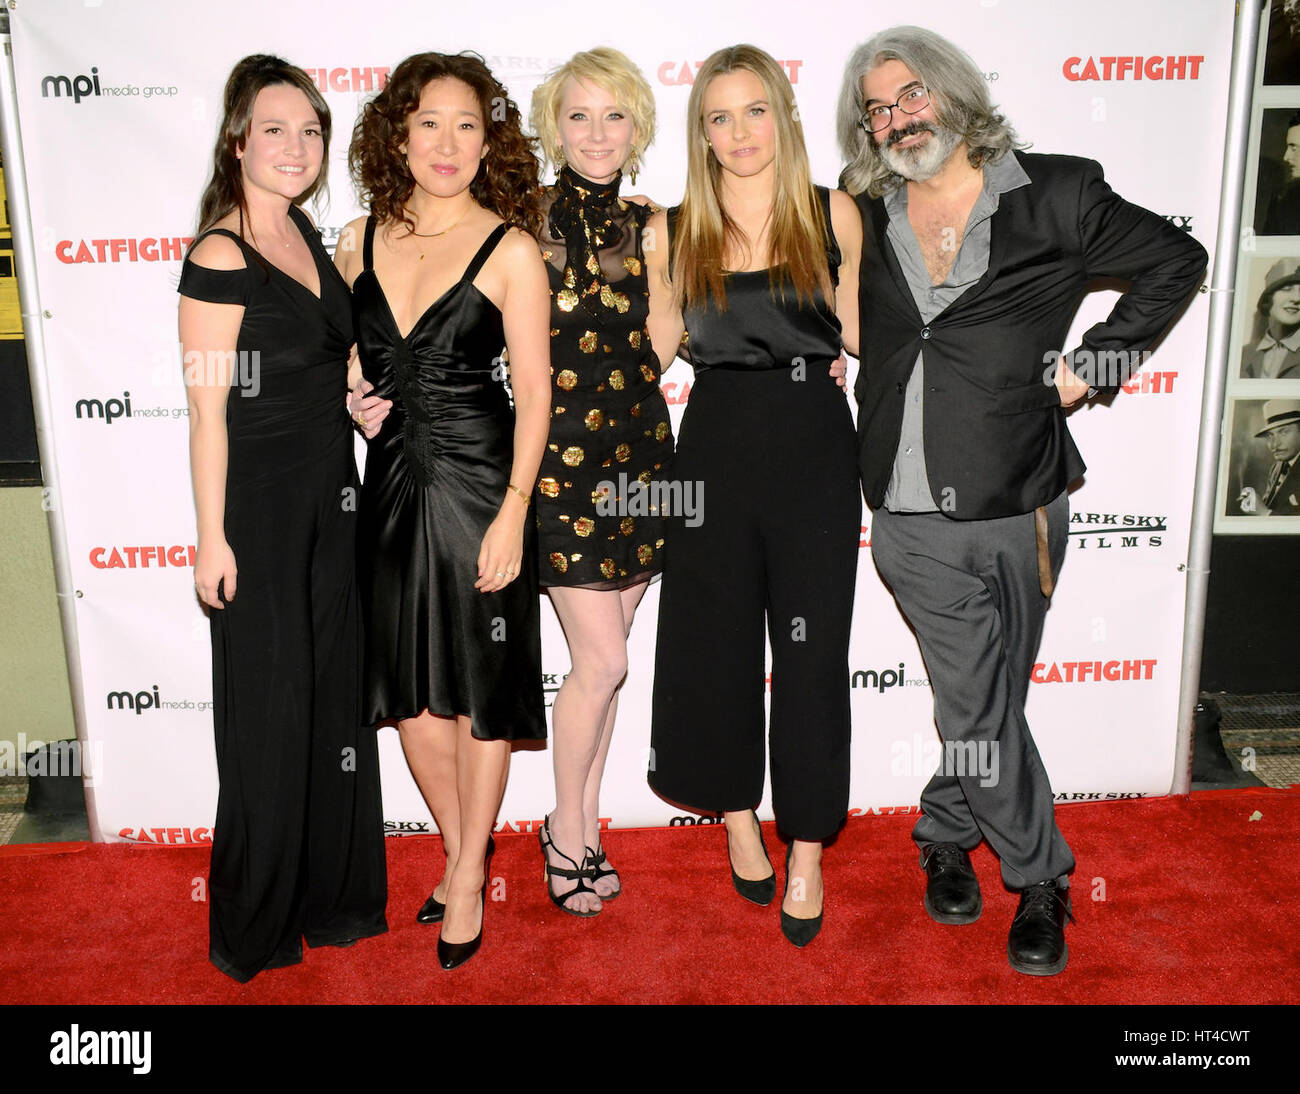 Sandra Oh, Anne Heche, Alicia Silverstone and Onur Tukel attends the premiere of Dark Sky Films' 'Catfight' - Stock Image